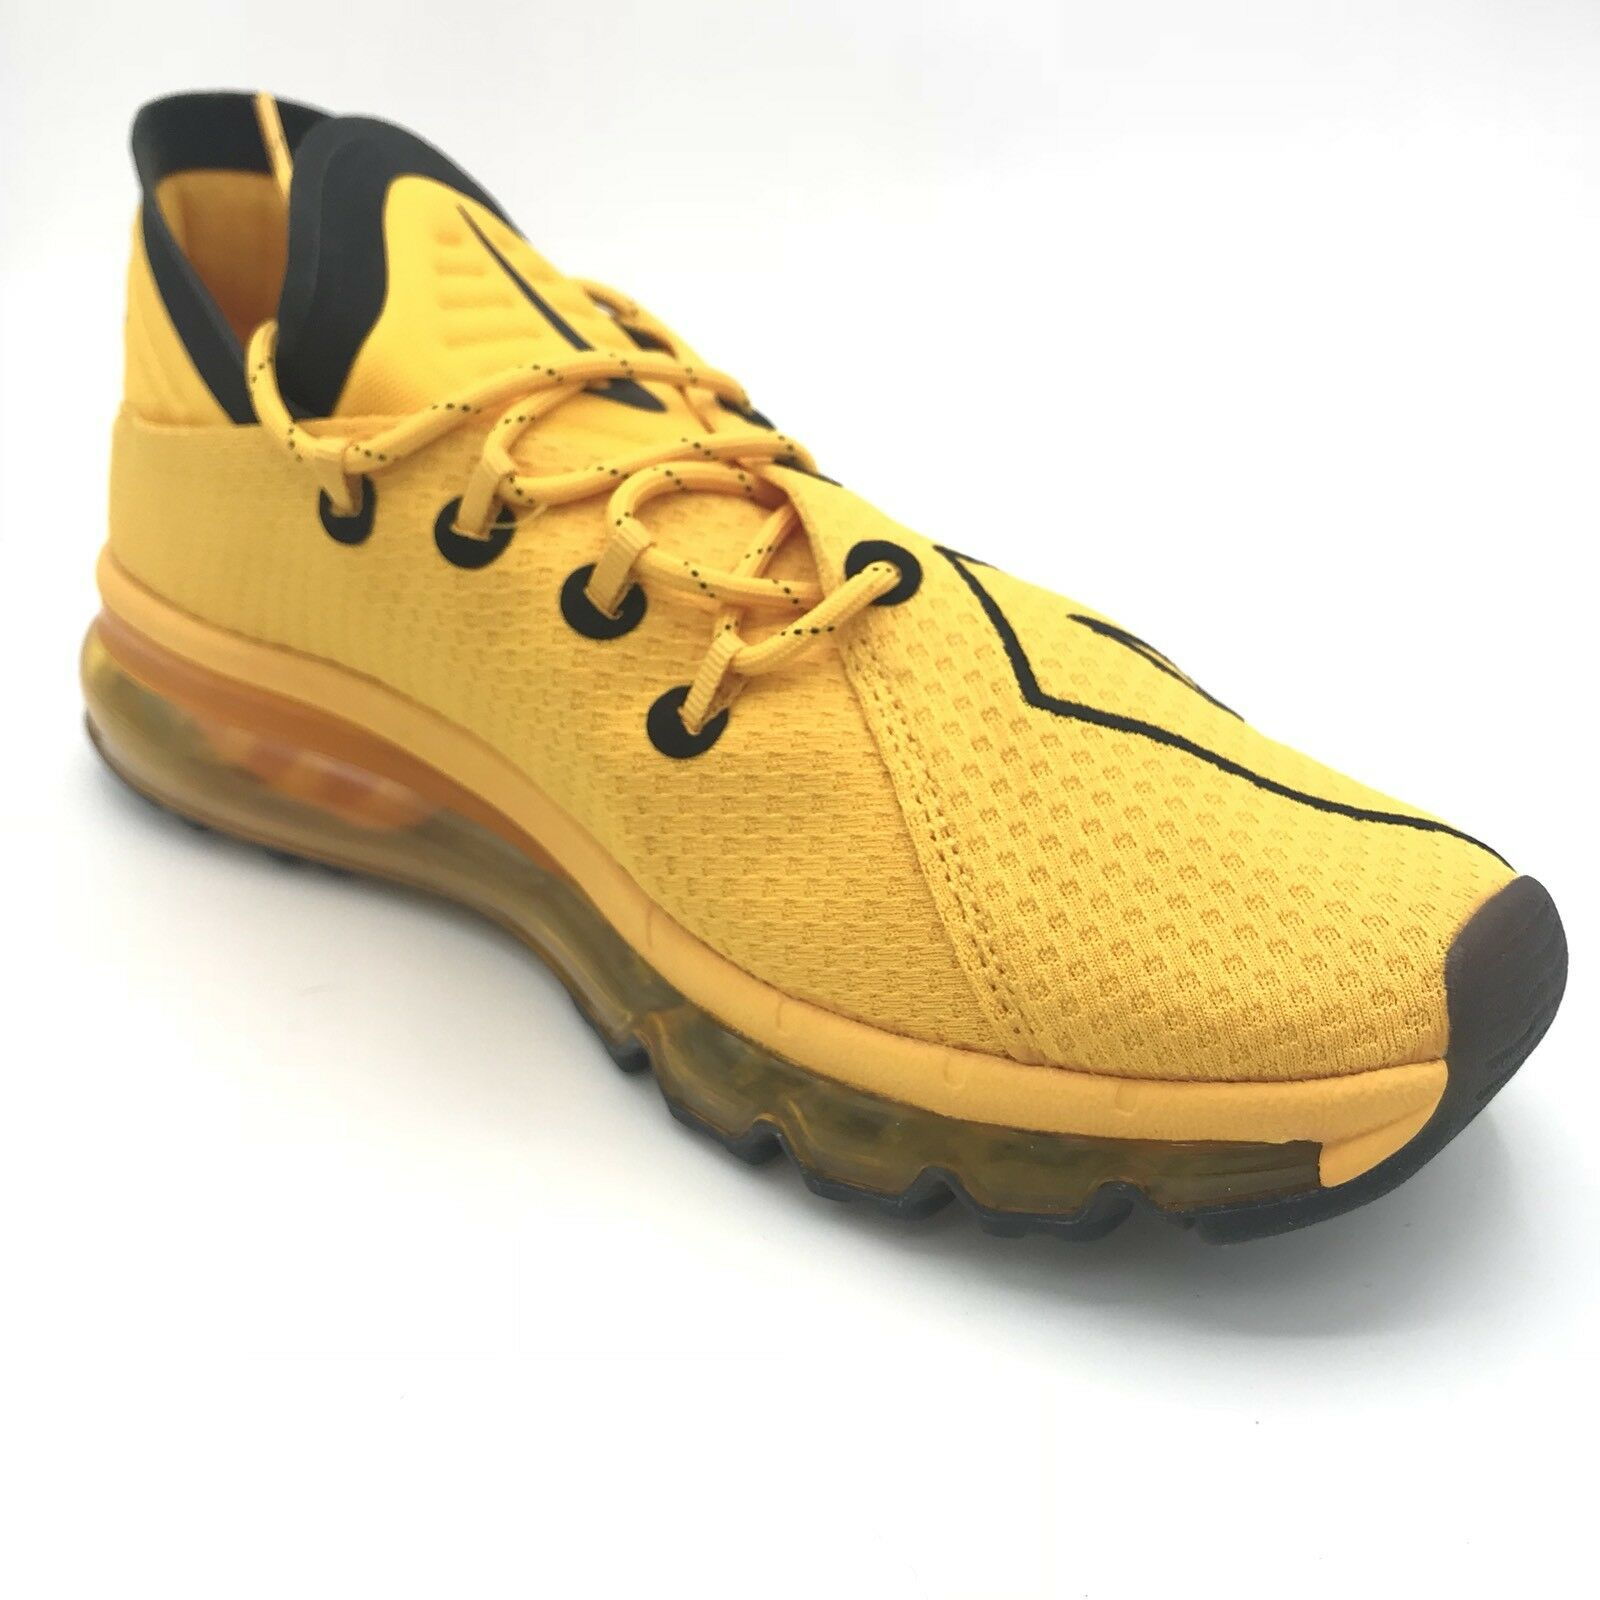 Nike Air Max Flair UpTempo University gold Yellow Black Mens Trainers 942236 700